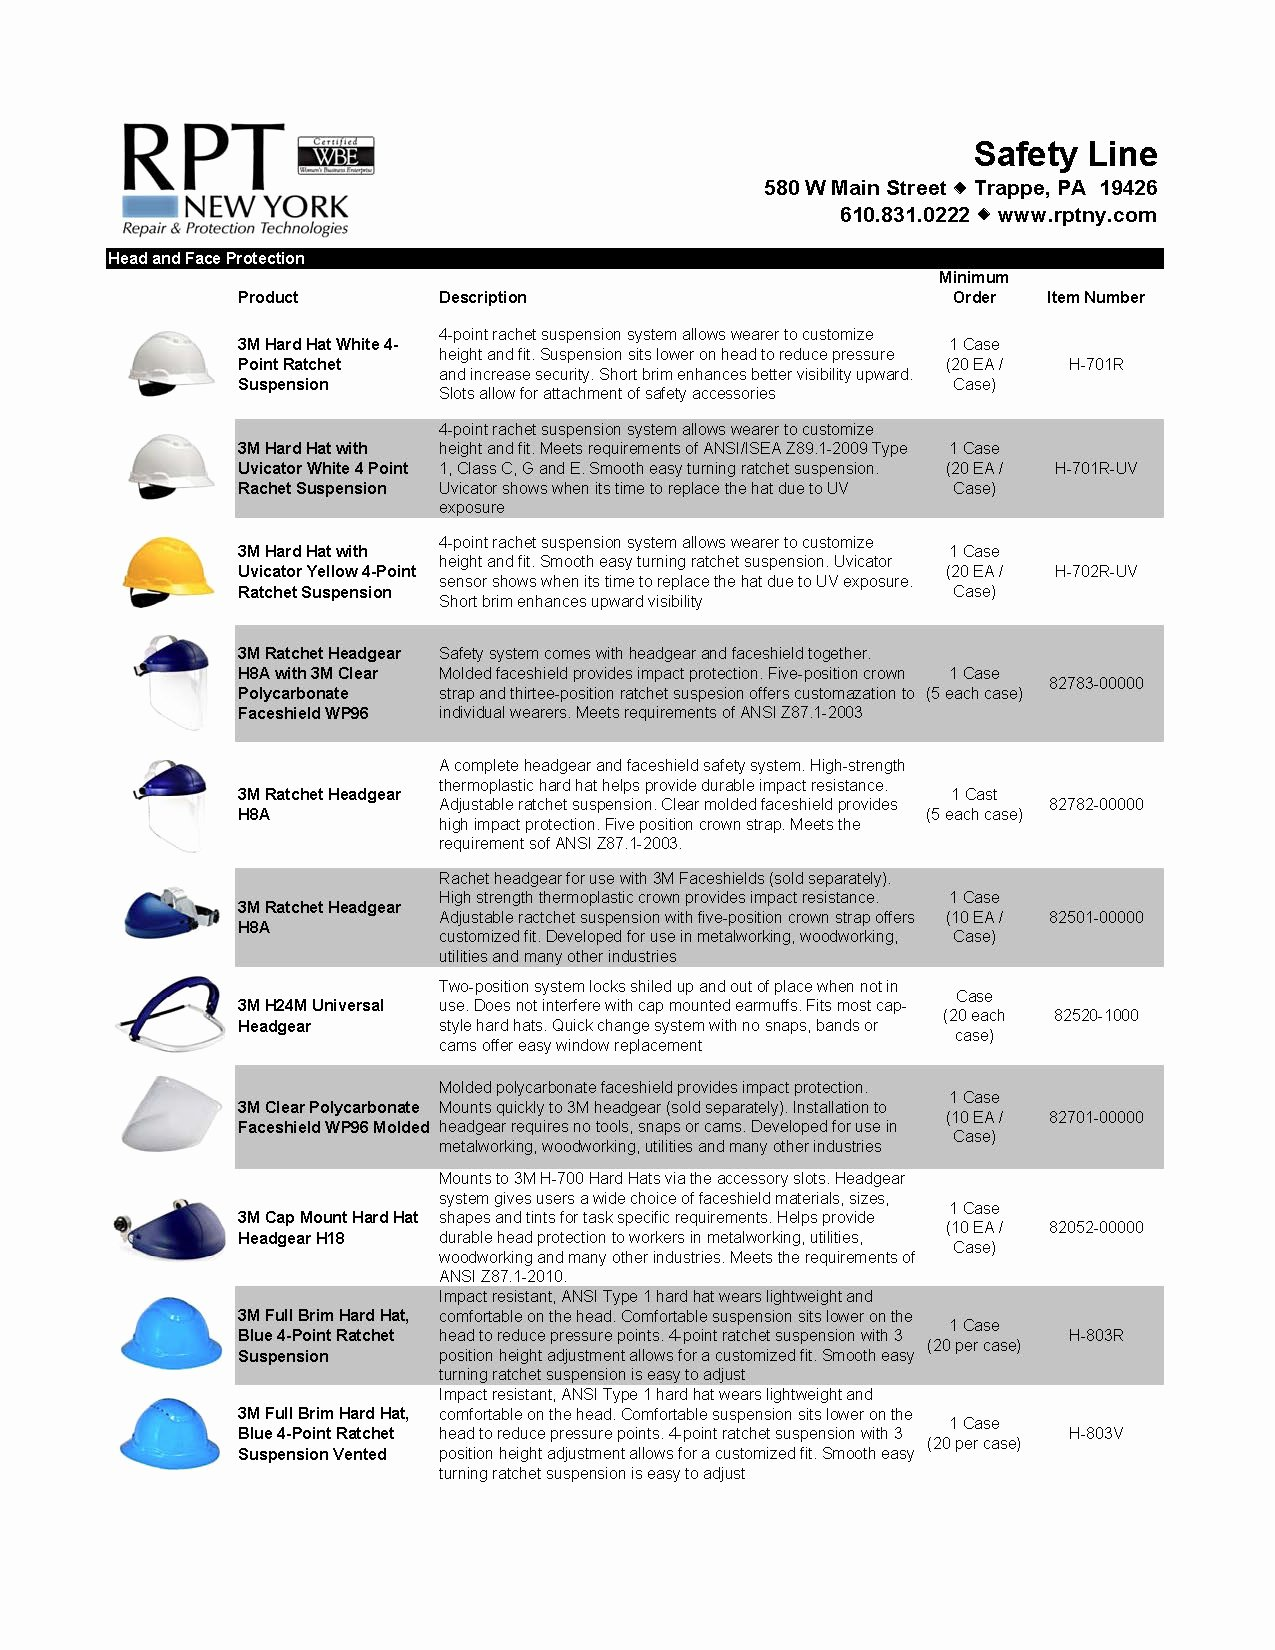 Product Line Card Template Best Of Head and Face Protection Rpt New York